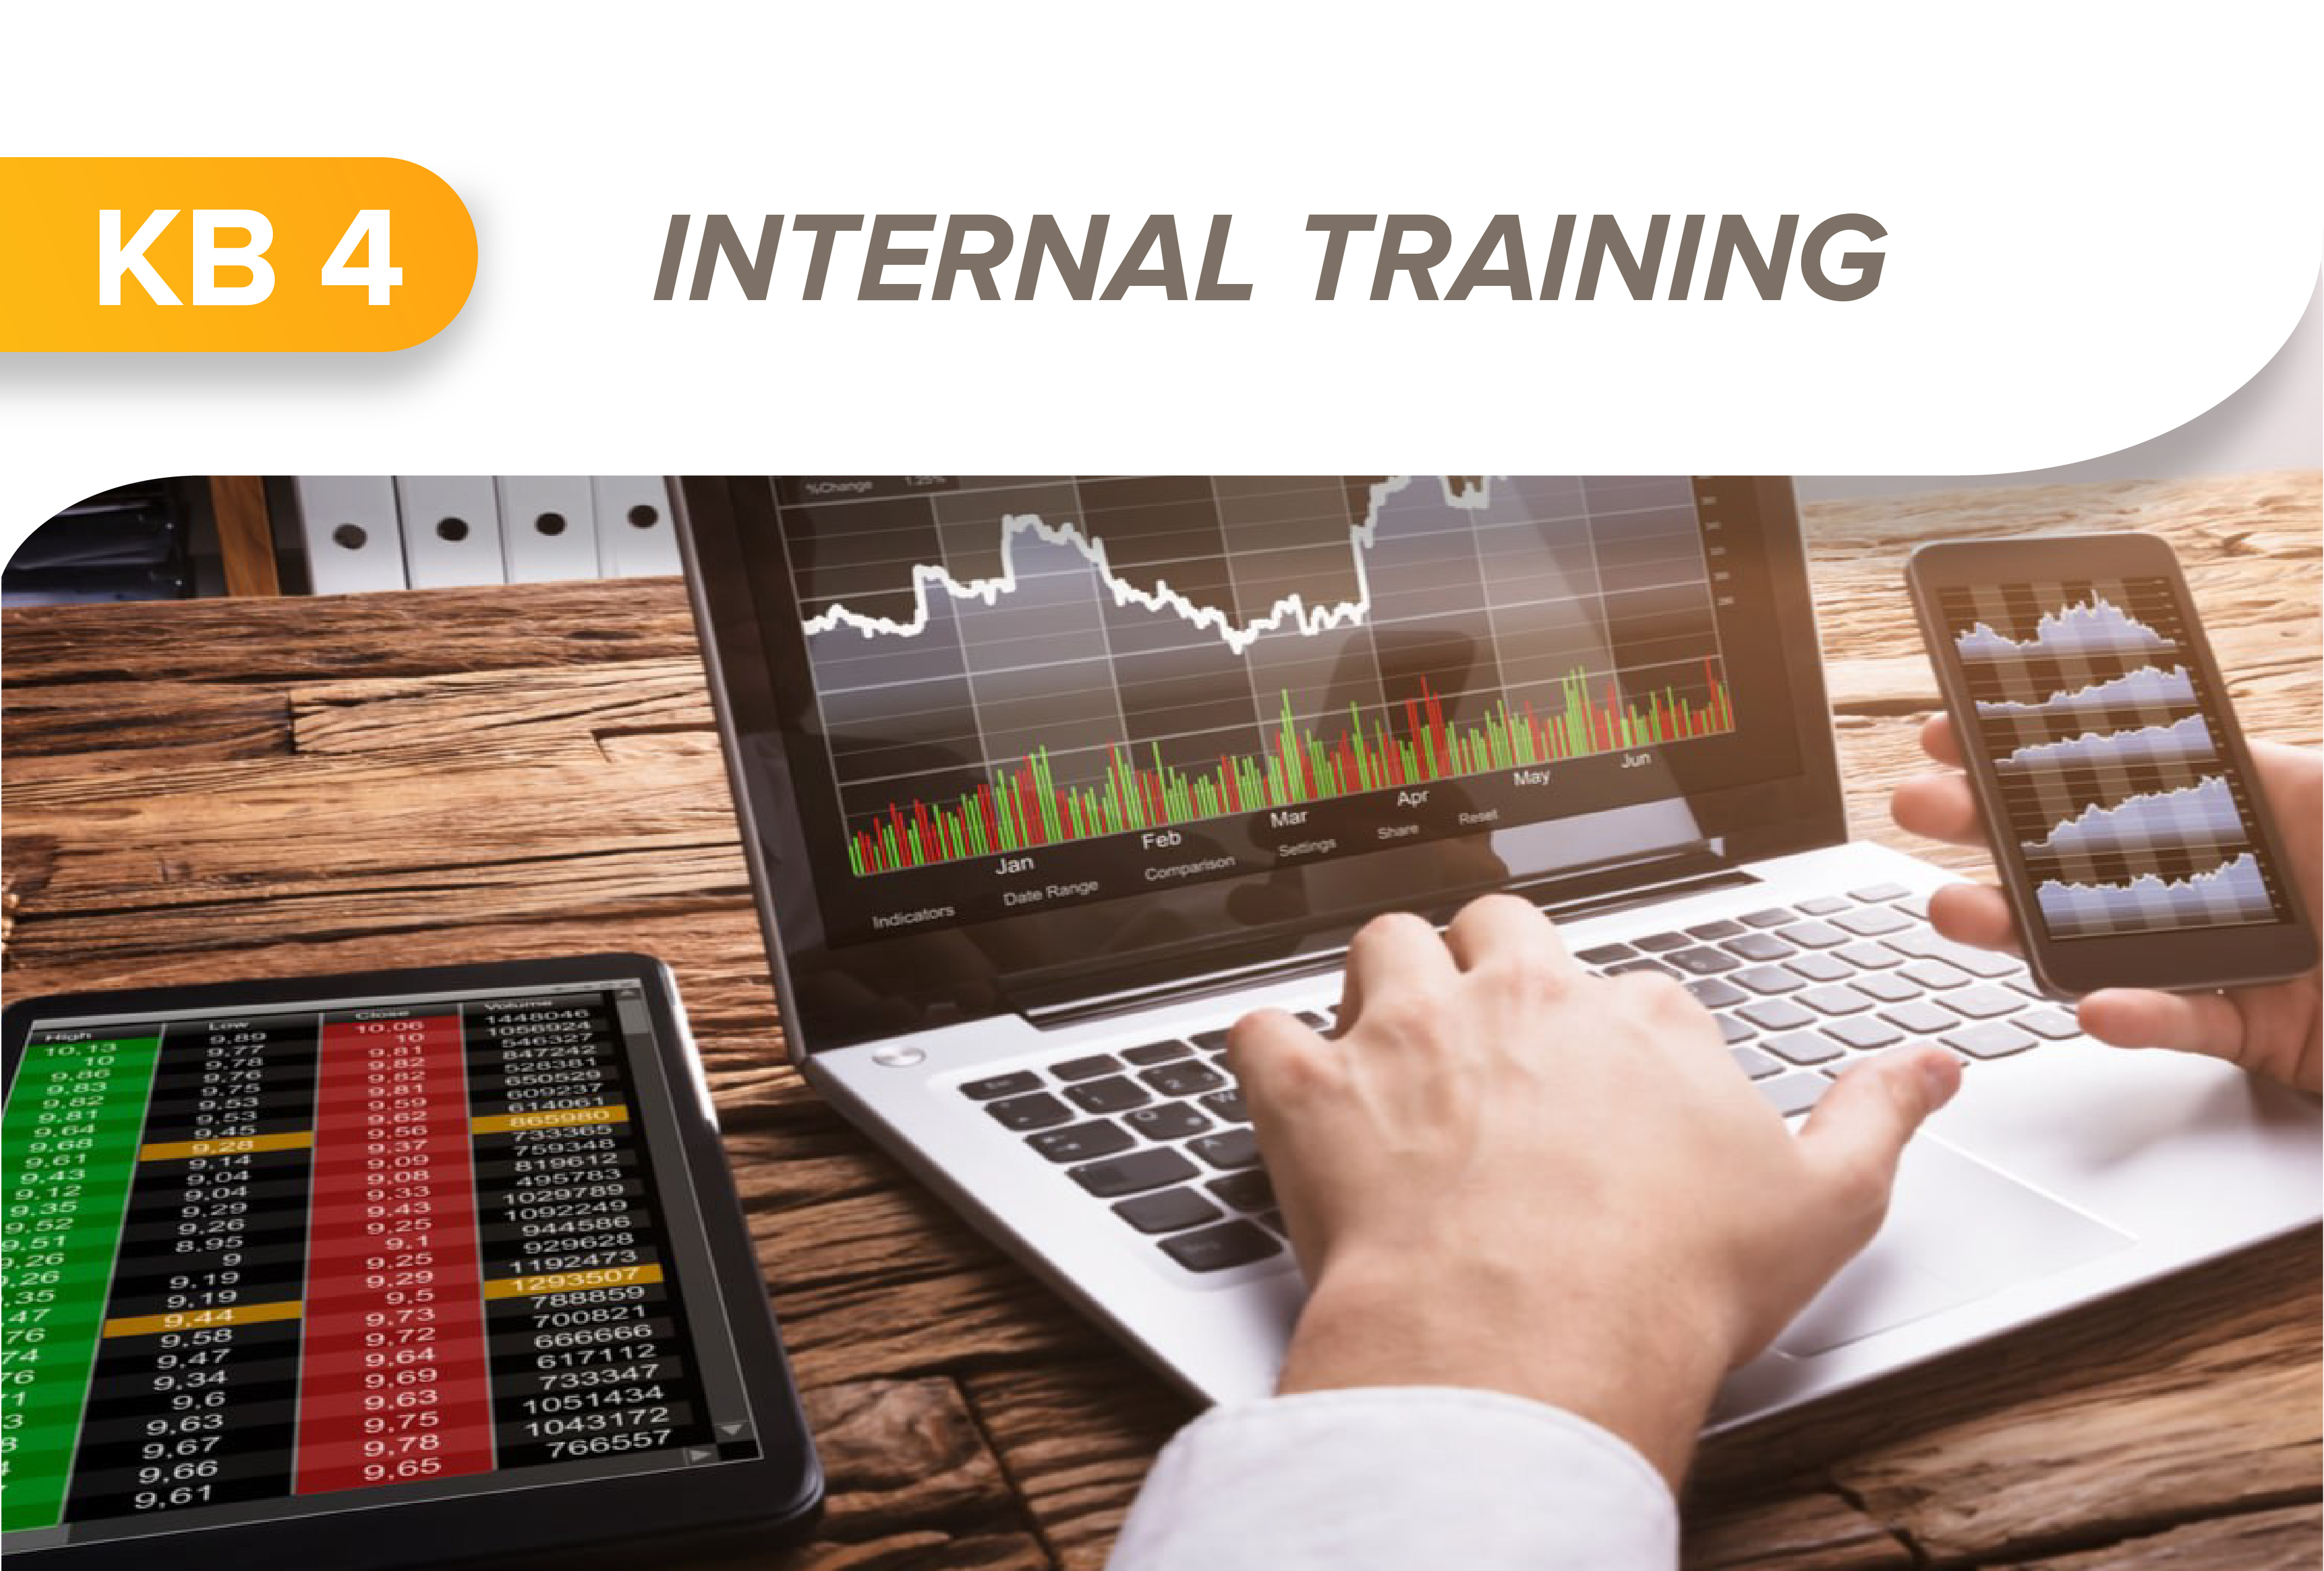 Internal training